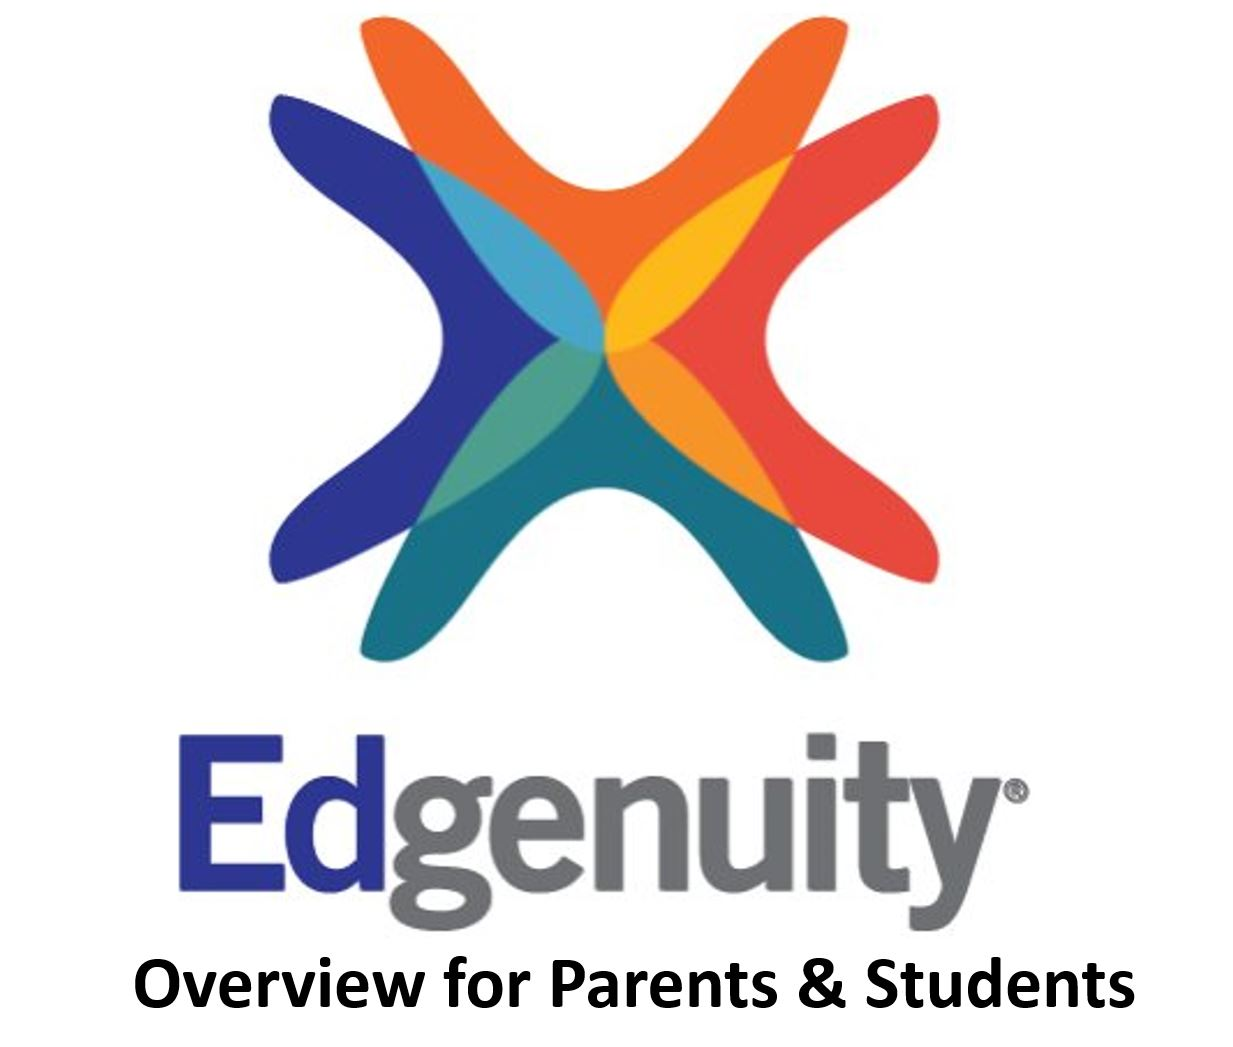 Edgenuity Overview